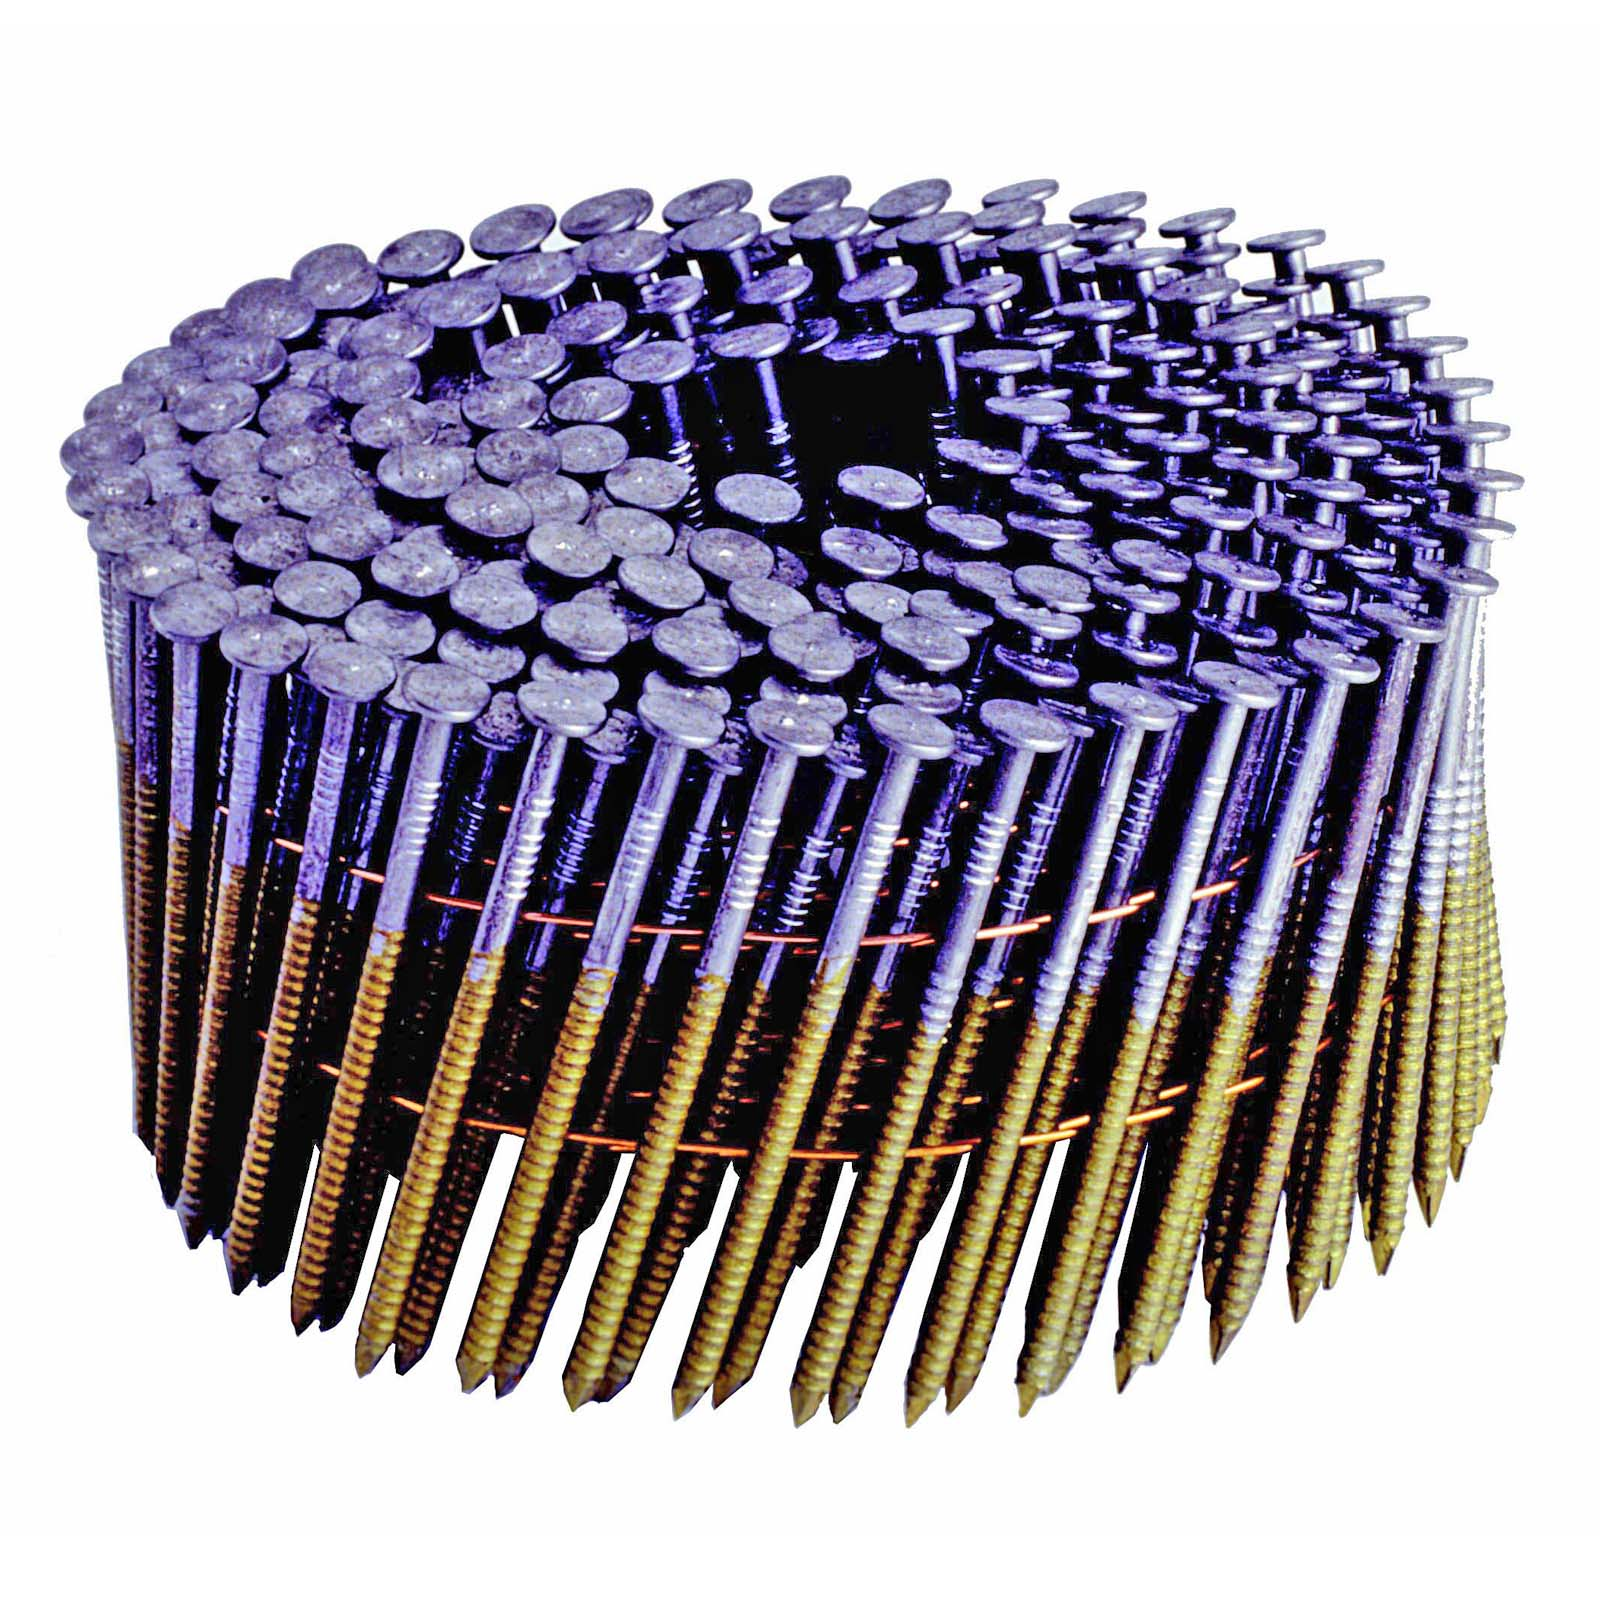 15 6D WIRE RING COATED COIL NAIL